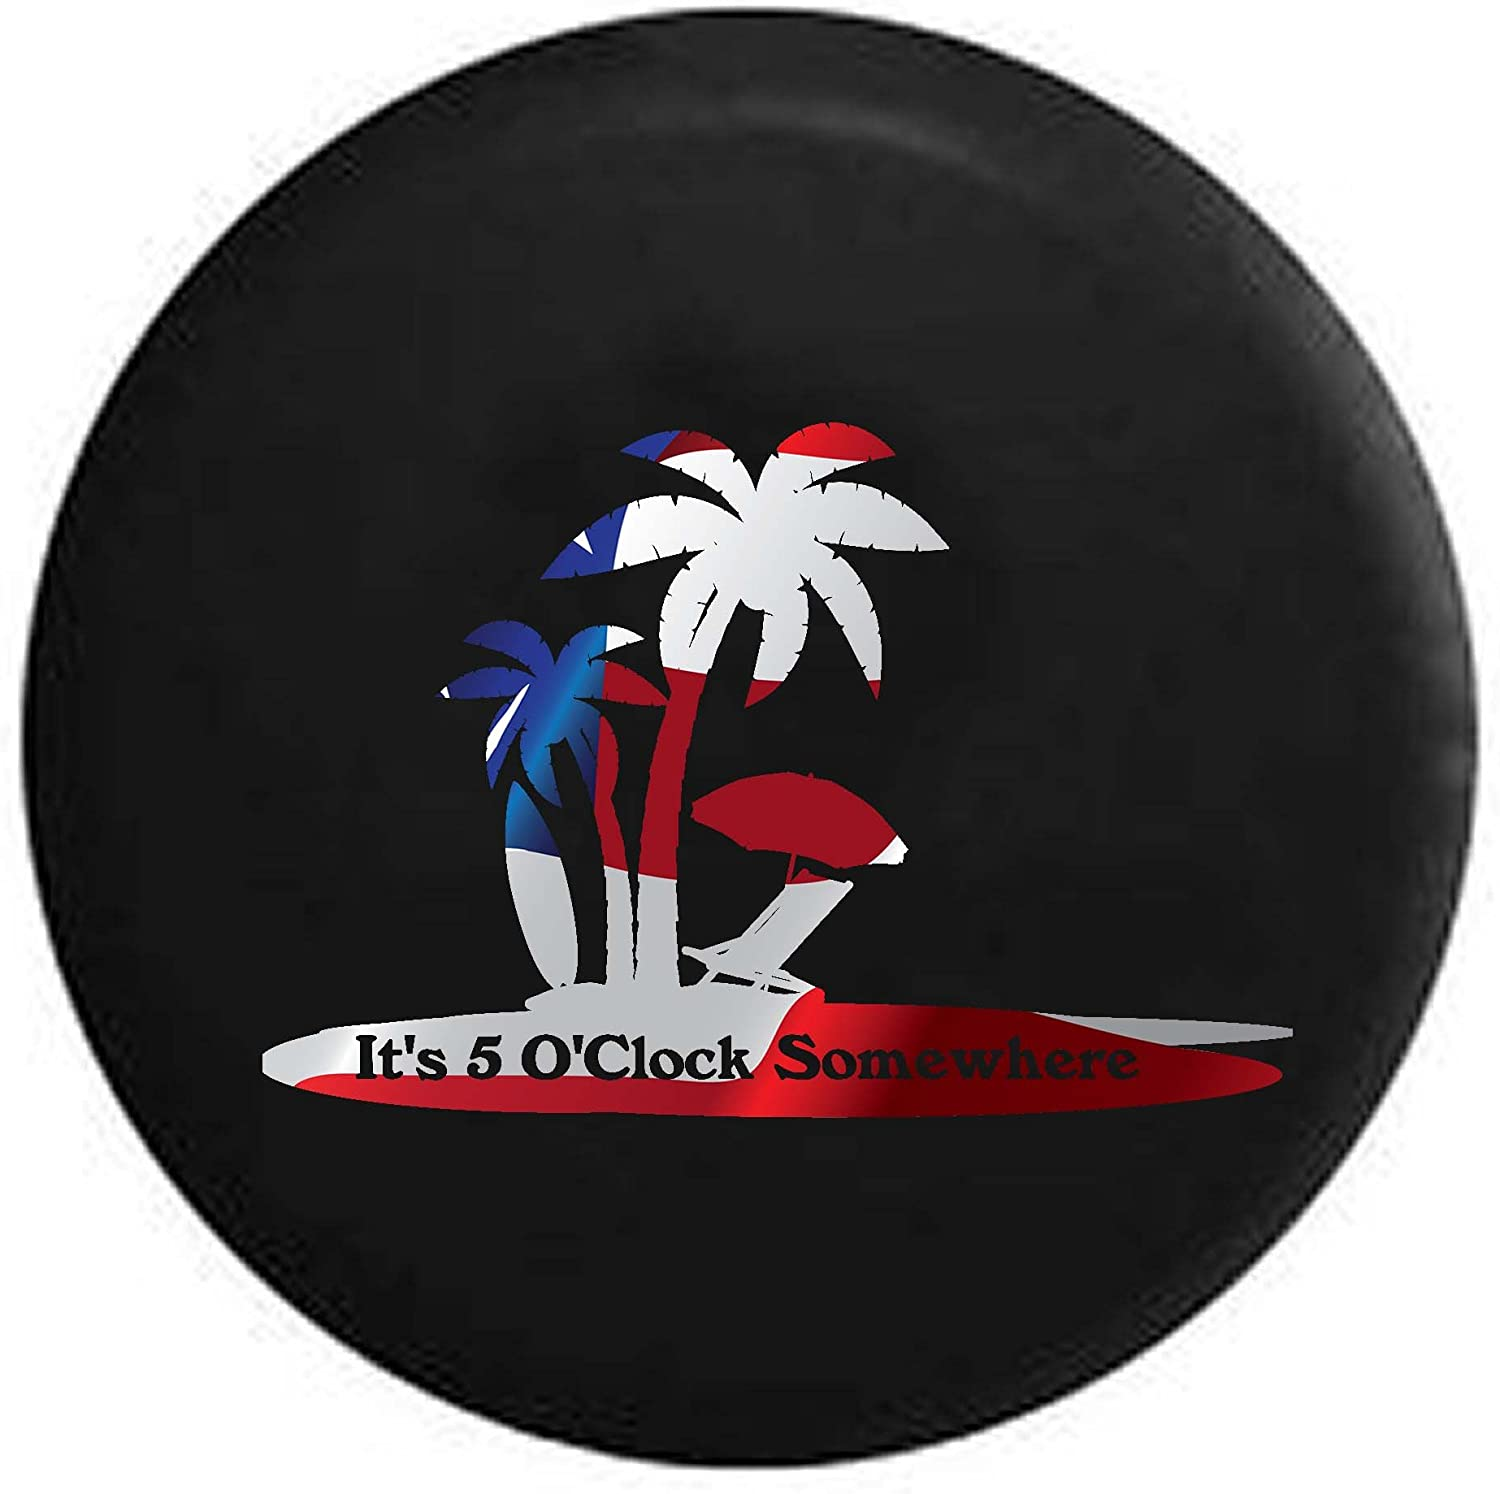 Its 5 OClock Somewhere Island Vacation Drinking RV Spare Tire Cover OEM Vinyl Black 27.5 in Pike Camo